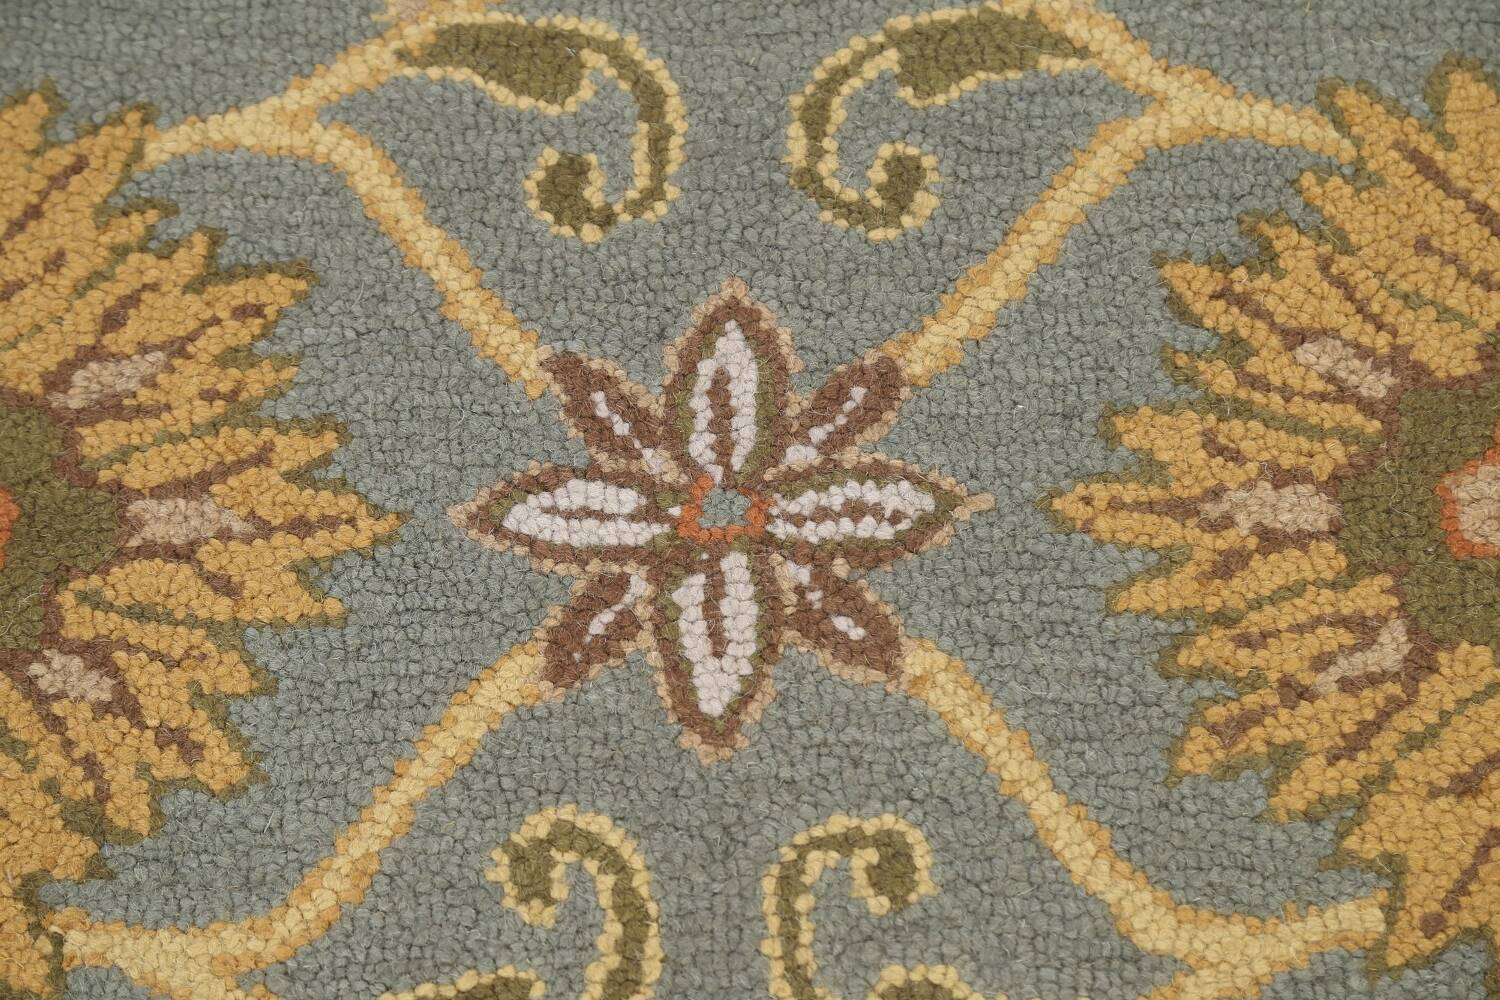 Hand-Tufted Floral Agra Area Rug 5x8 image 8